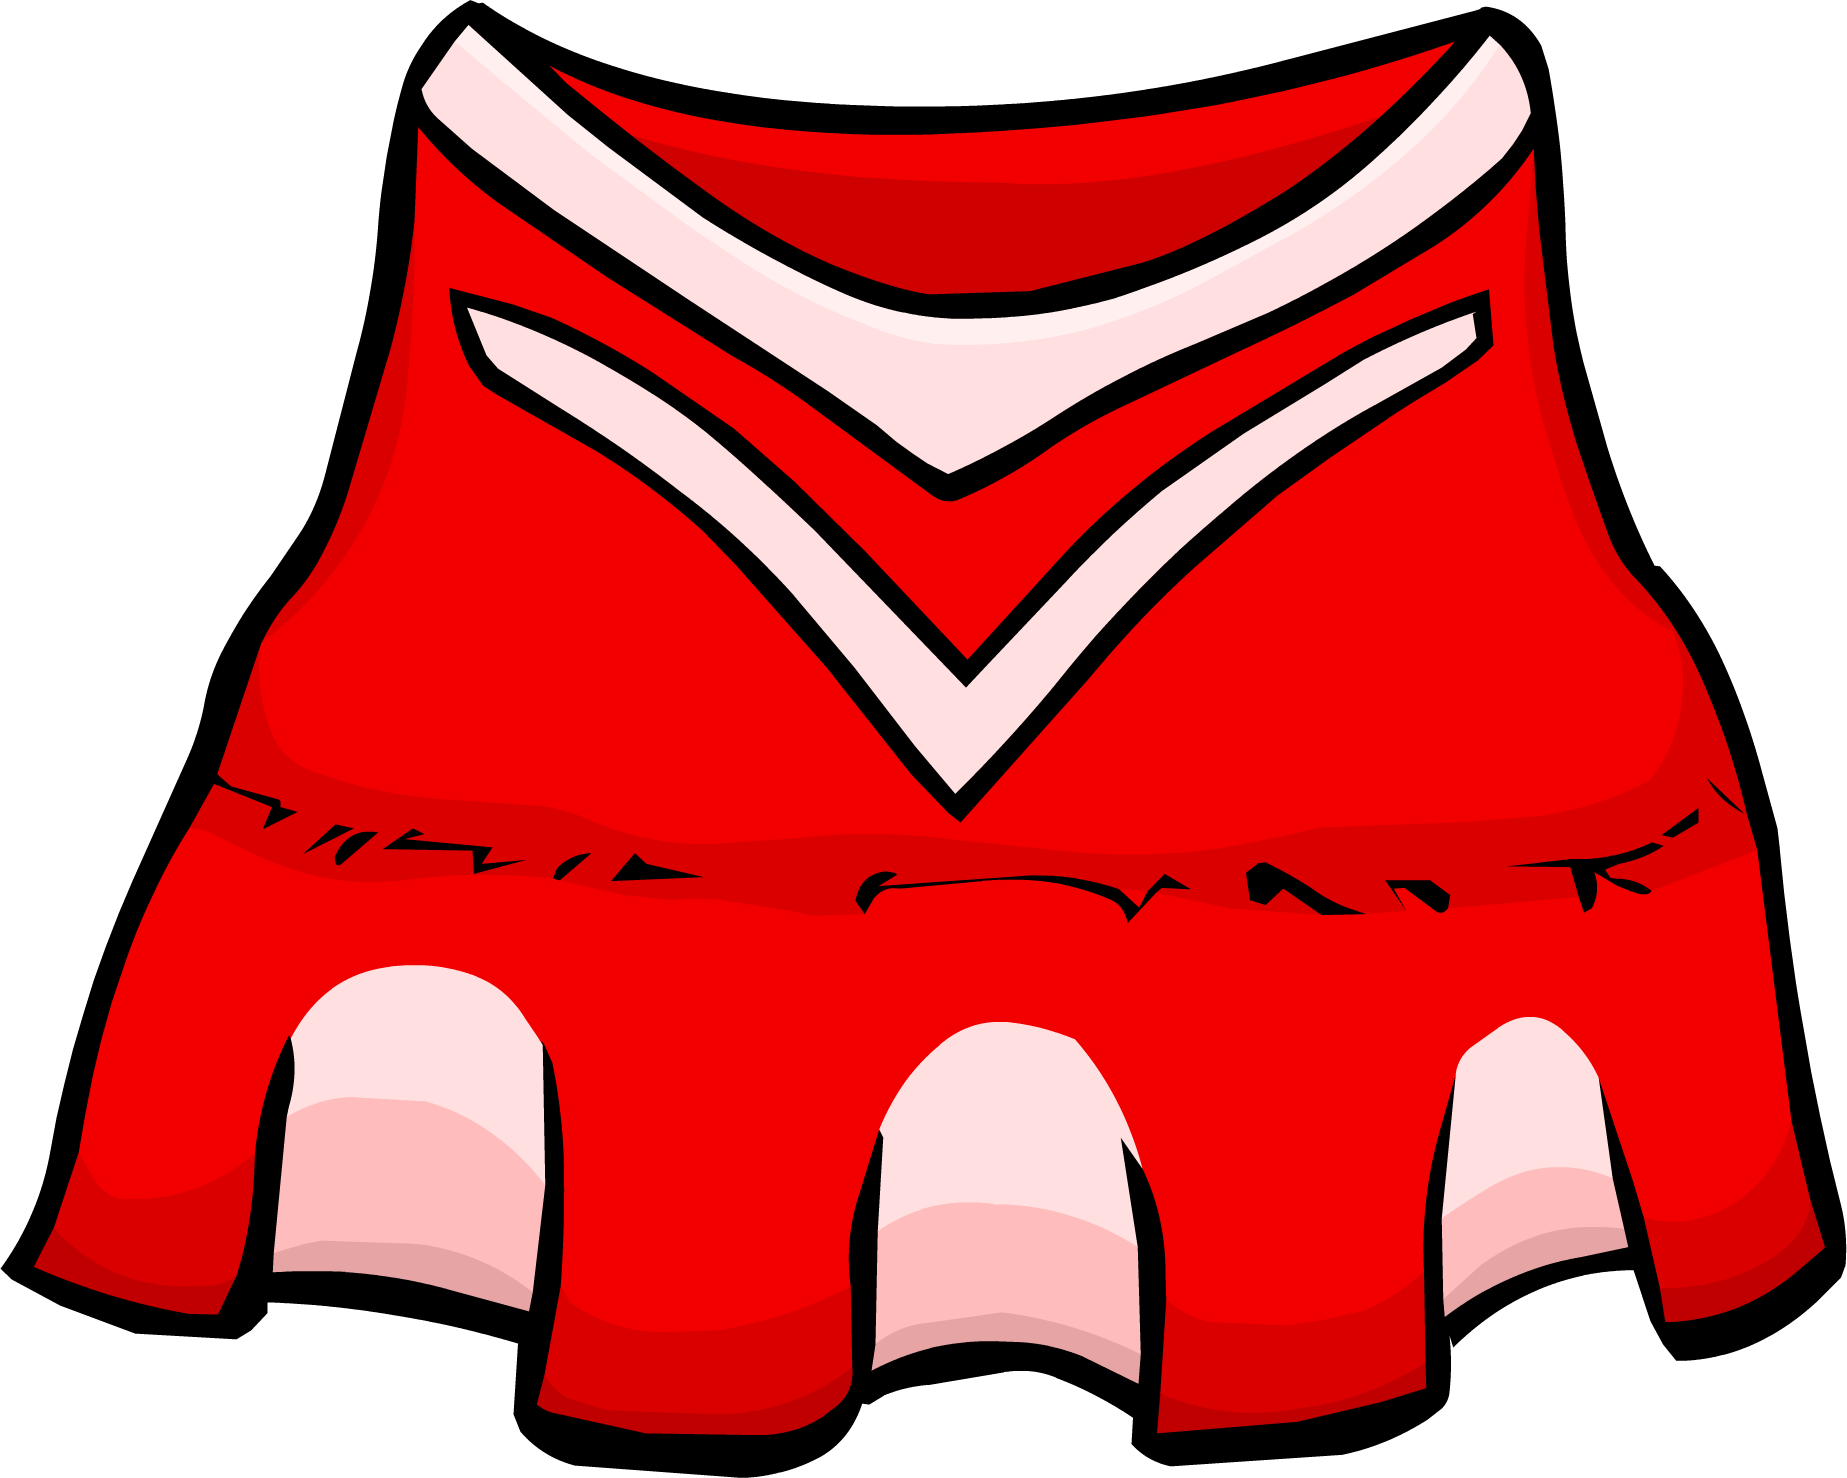 clip free stock Clothes clipart cheerleader. Image red outfit clothing.